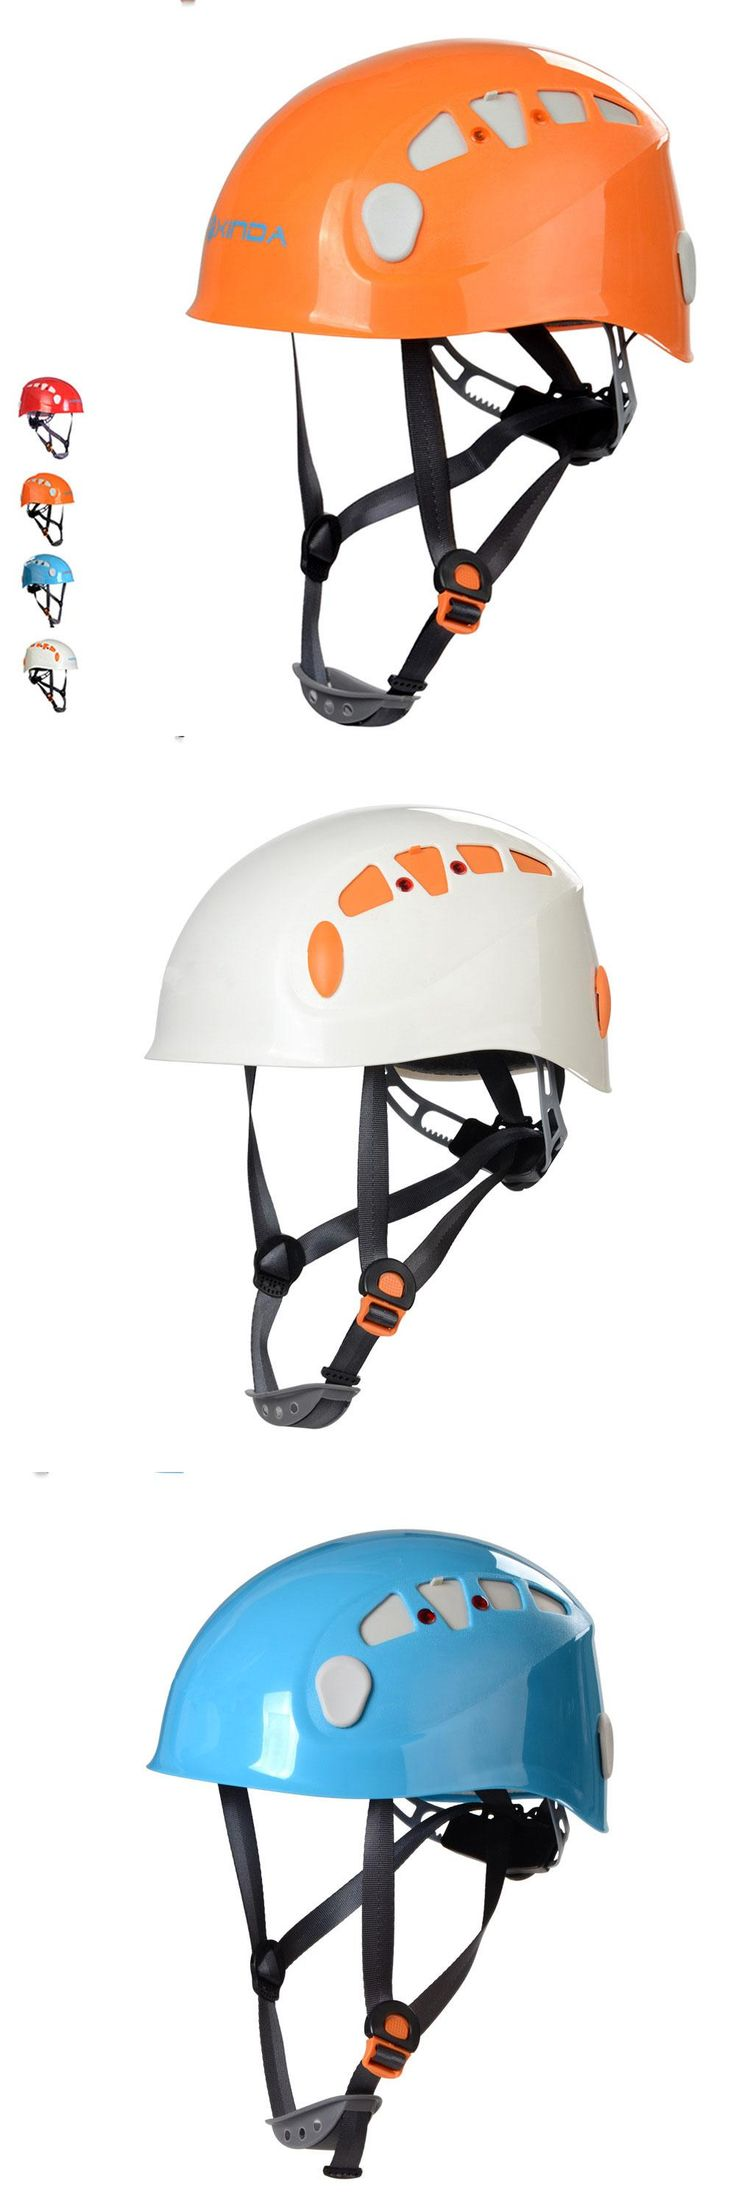 Equipement trail boutique running sports outdoor shop -  Visit To Buy Adjustable Mountaineer Helmet Outdoor Safety Climbing Cycling Drifting Rappelling Protector Gear